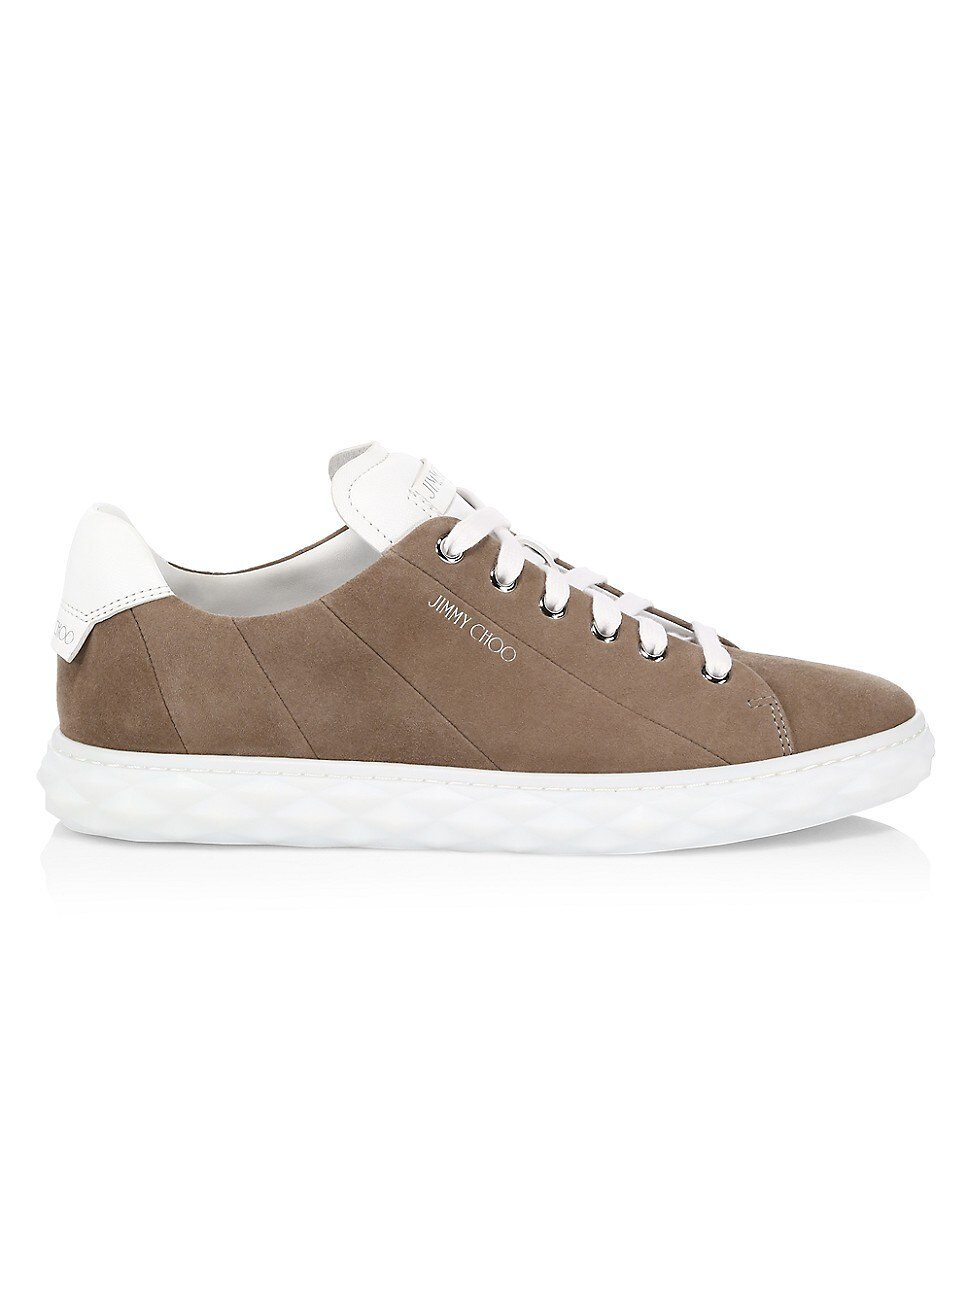 Jimmy Choo WOMEN'S DIAMOND SUEDE SNEAKERS